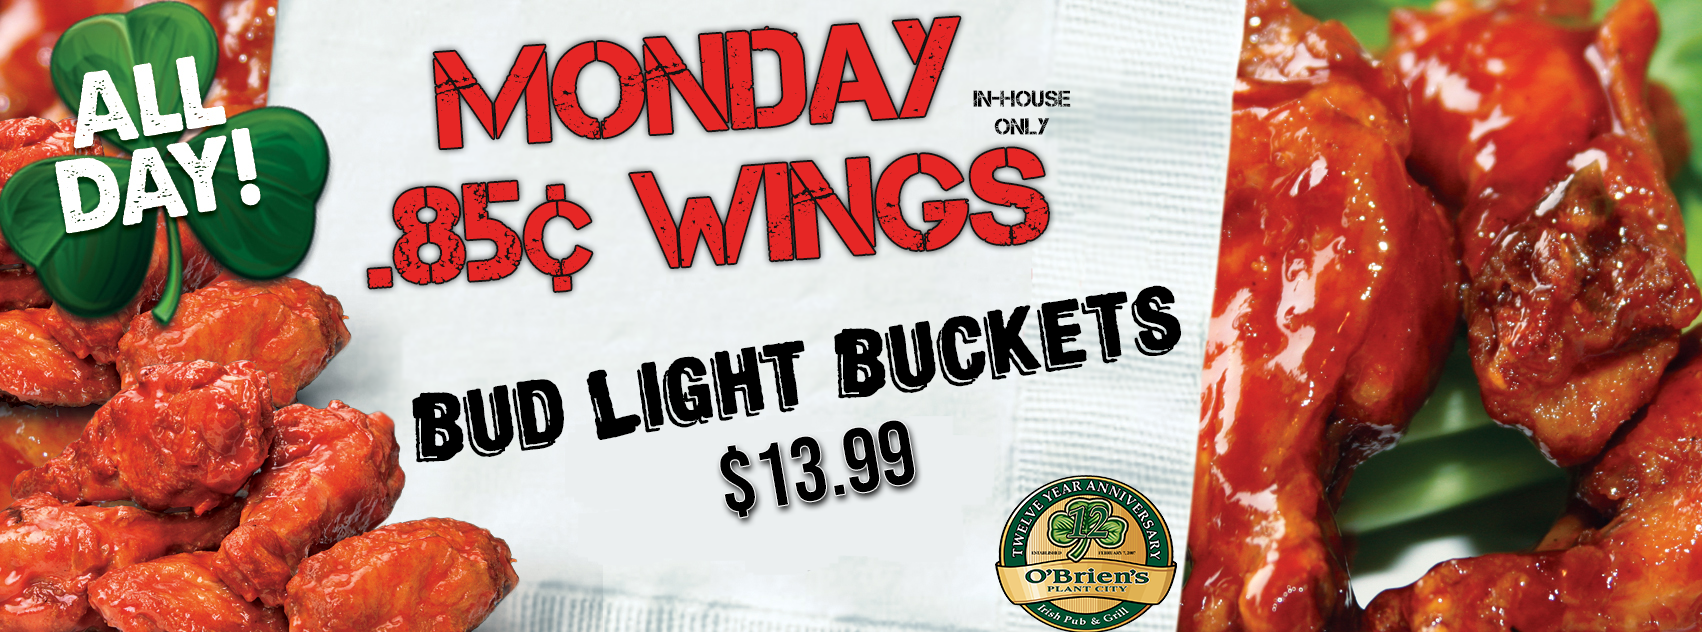 Plant-City-Monday-Specials-Wings-and-Bud-Light-Buckets-Website-Banner